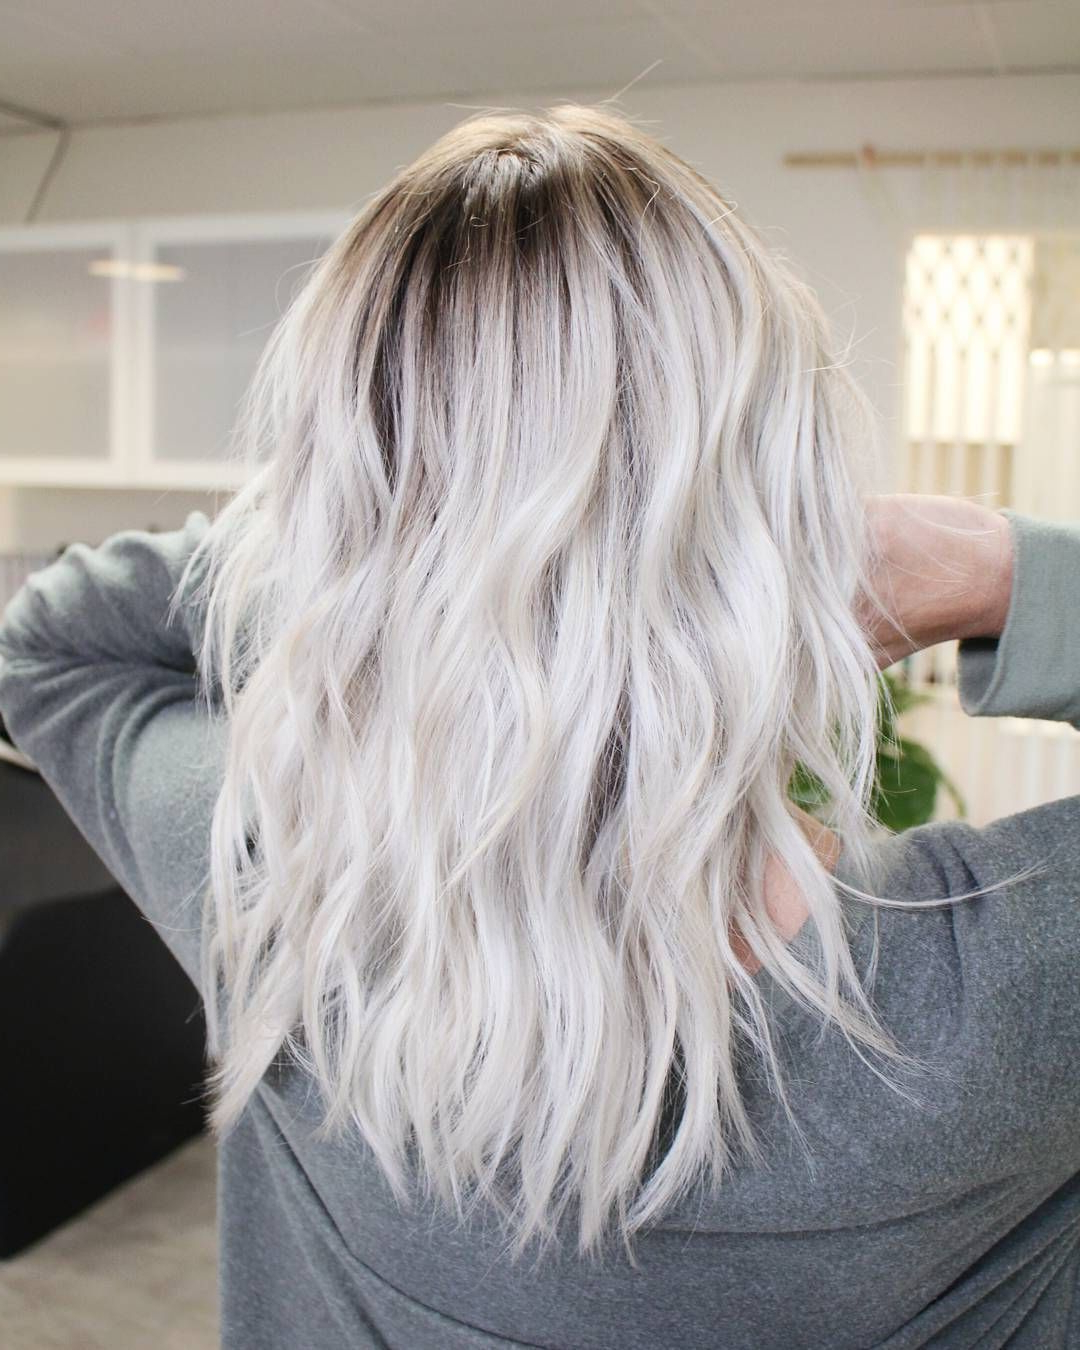 Women Hairstyle : Licious Blonde Hairstyles Short Hair Pinterest Intended For Well Known Platinum Blonde Medium Hairstyles (View 17 of 20)